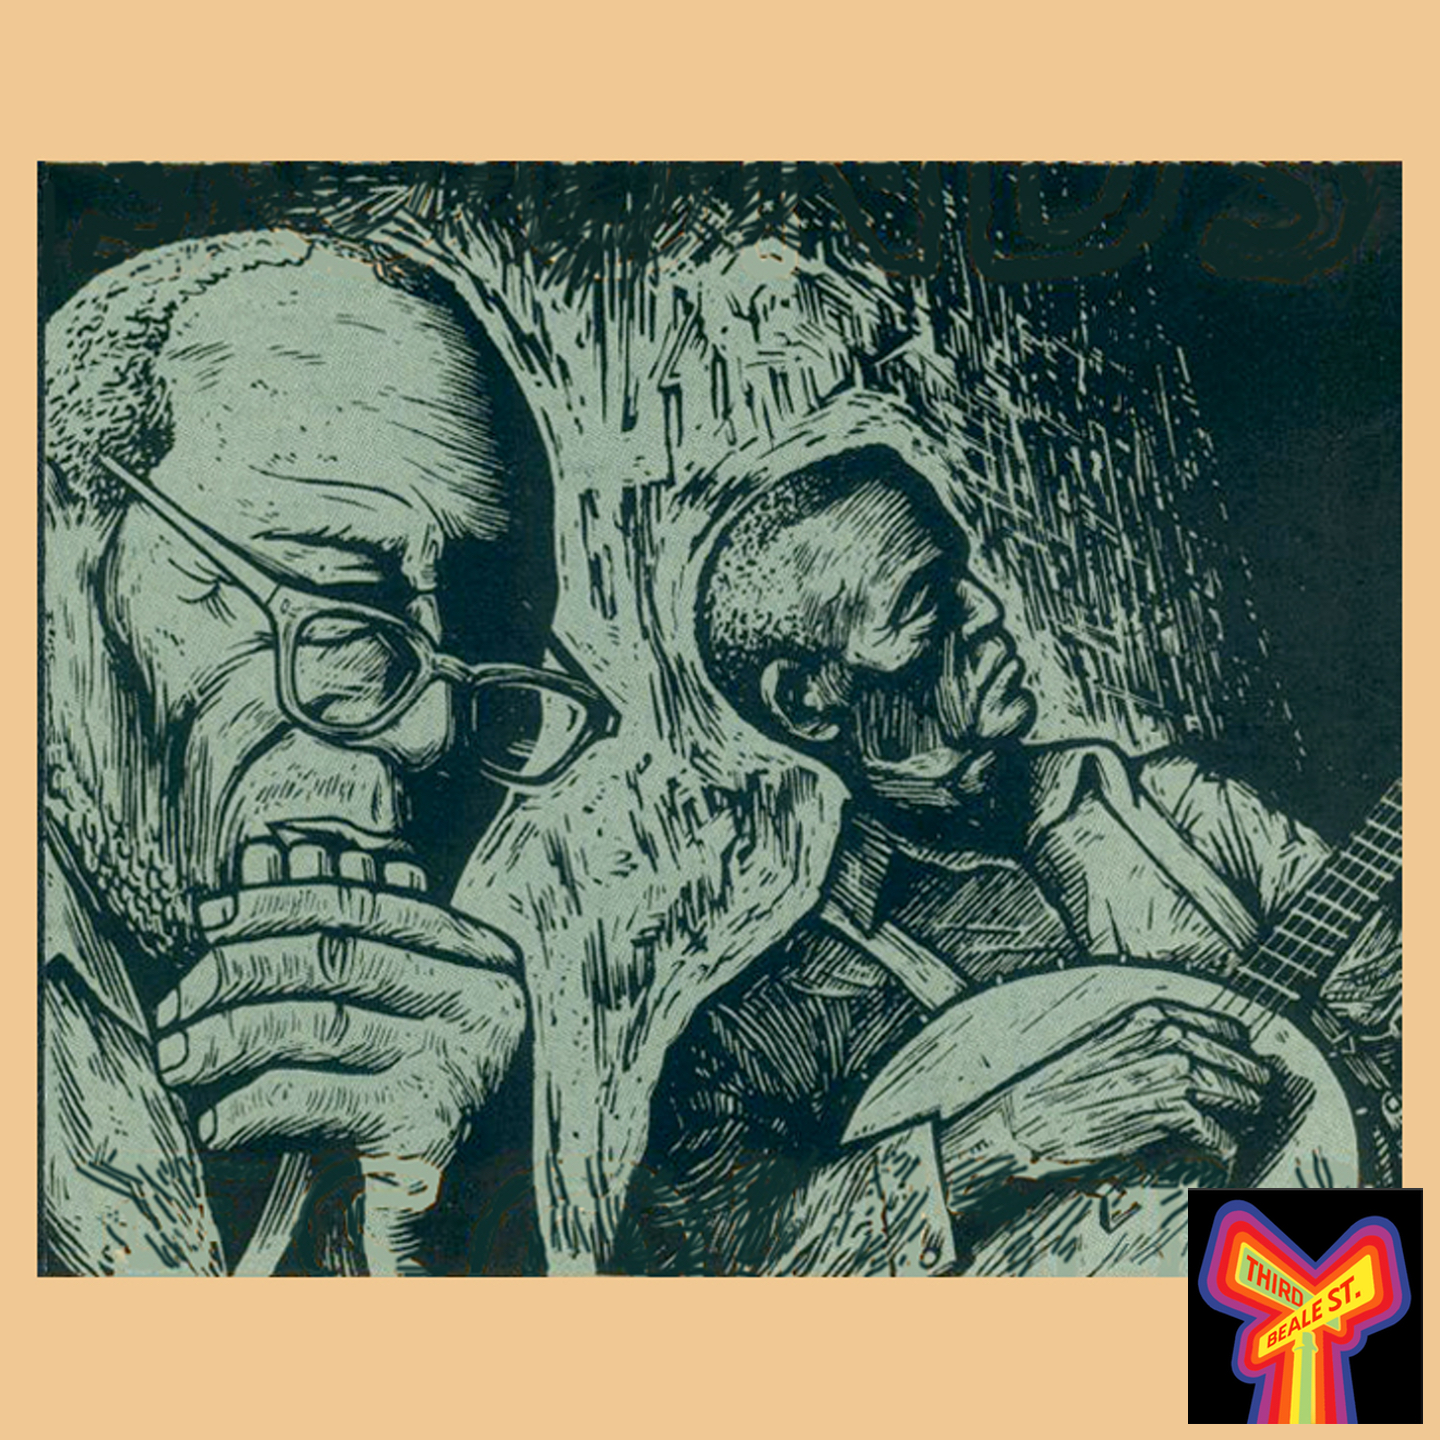 Caption: Two legendary Hill Country musicians, Sid Hemphill and Lucius Smith. Illustration by Archer Pruitt.